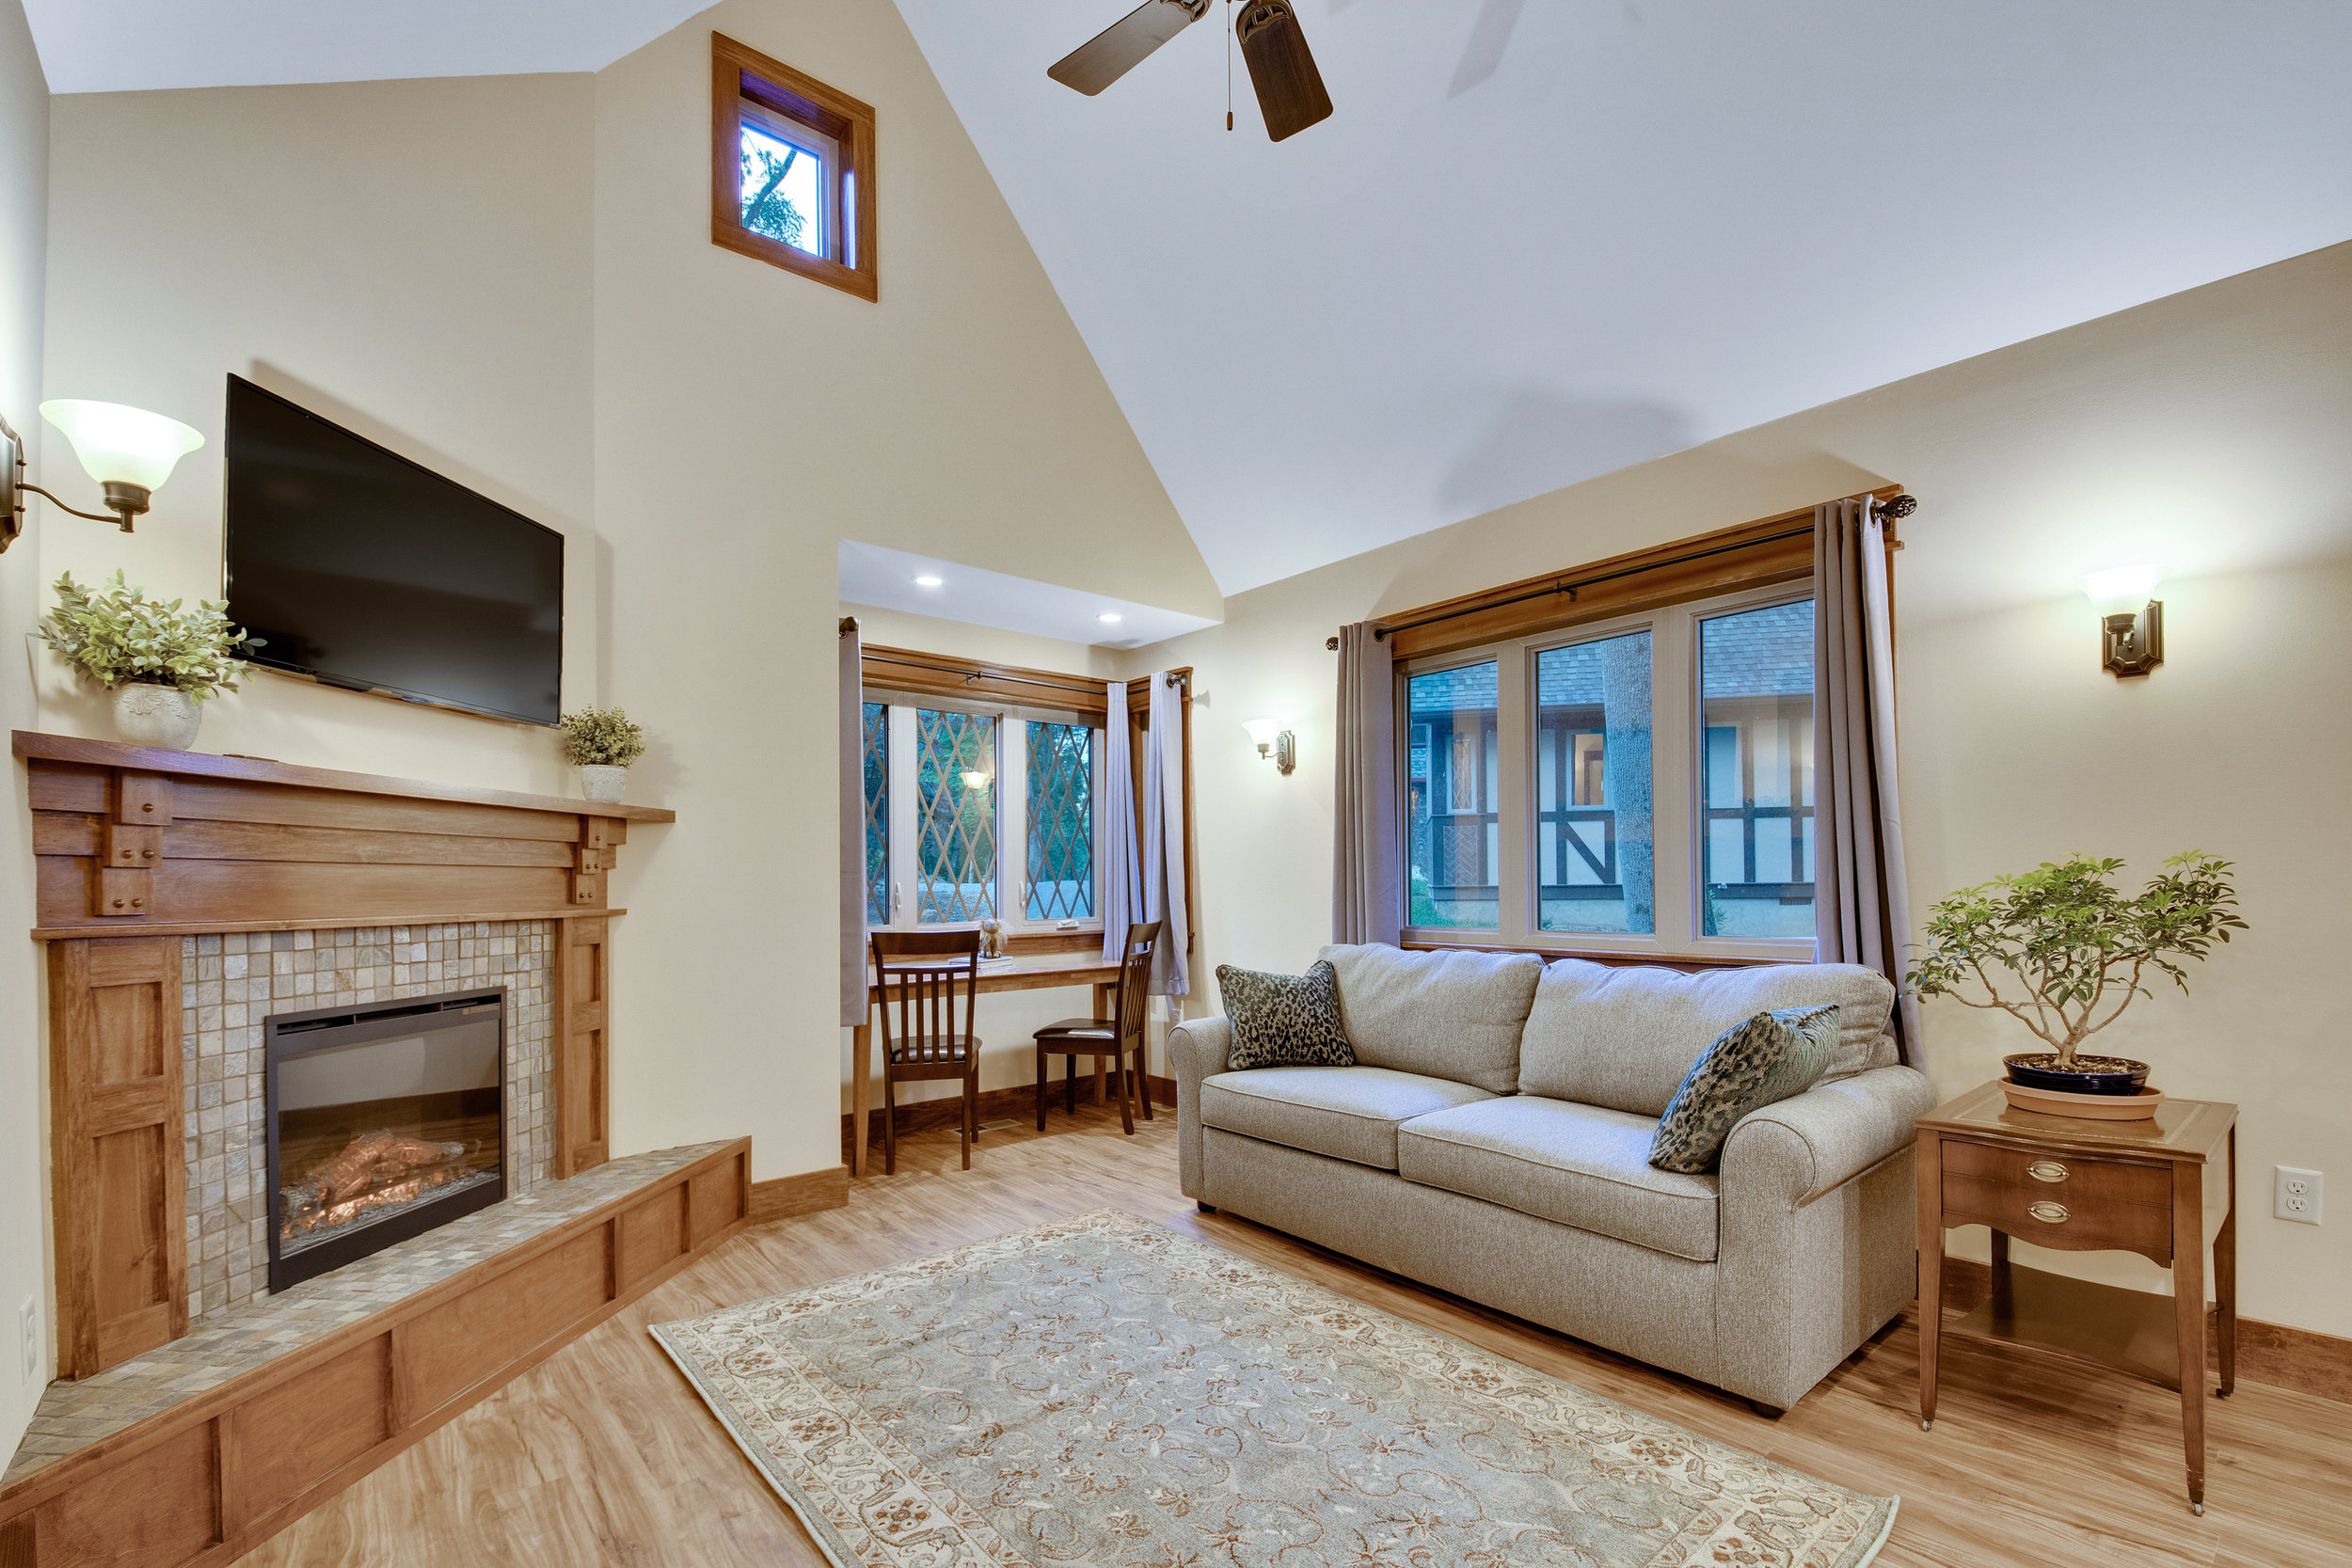 Cozy living room with dining nook and fireplace